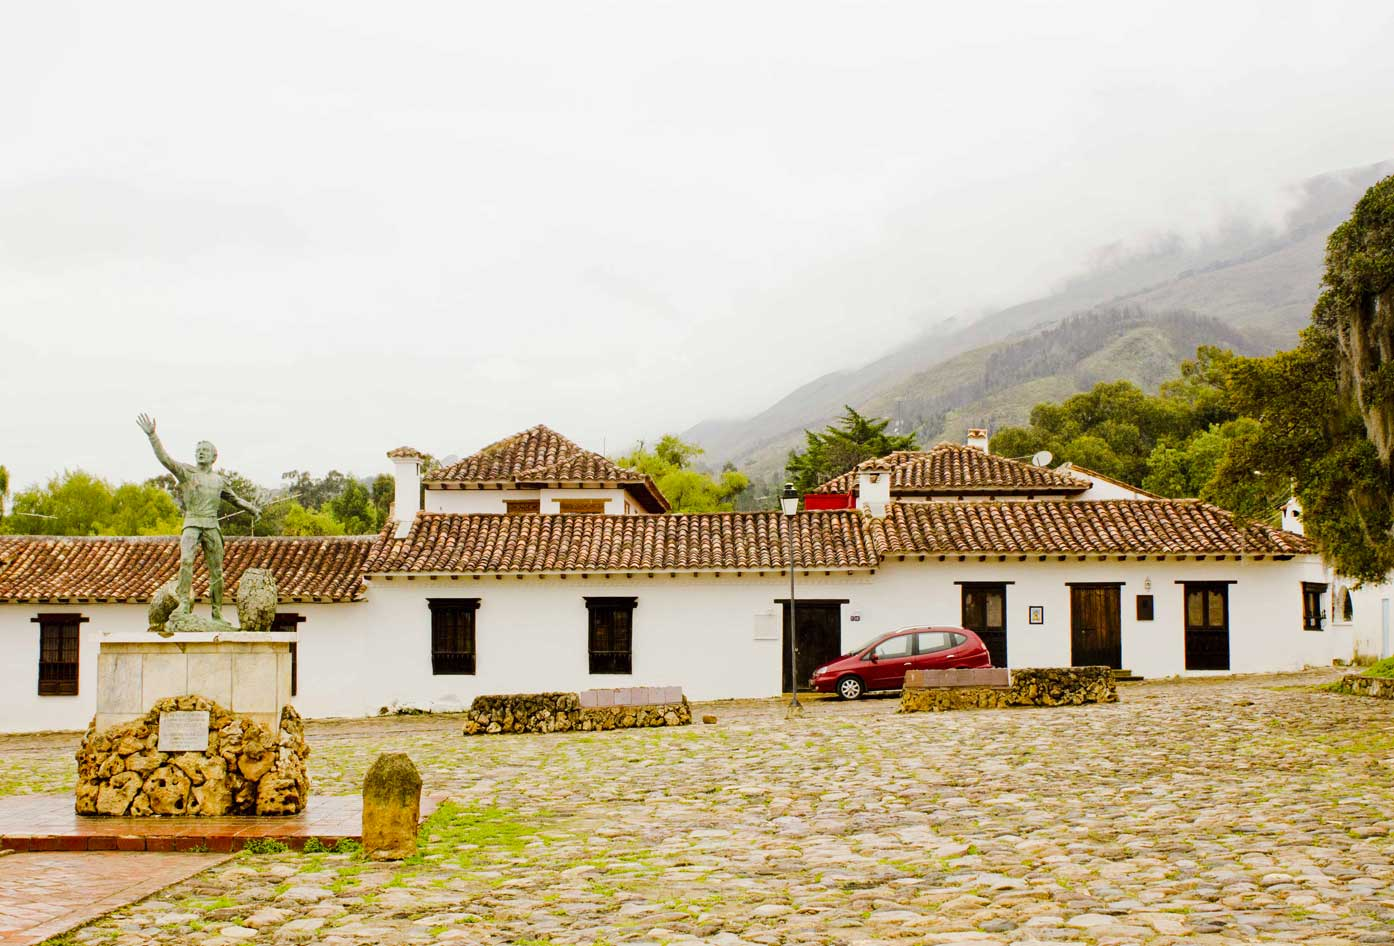 backpackers guide to colombia